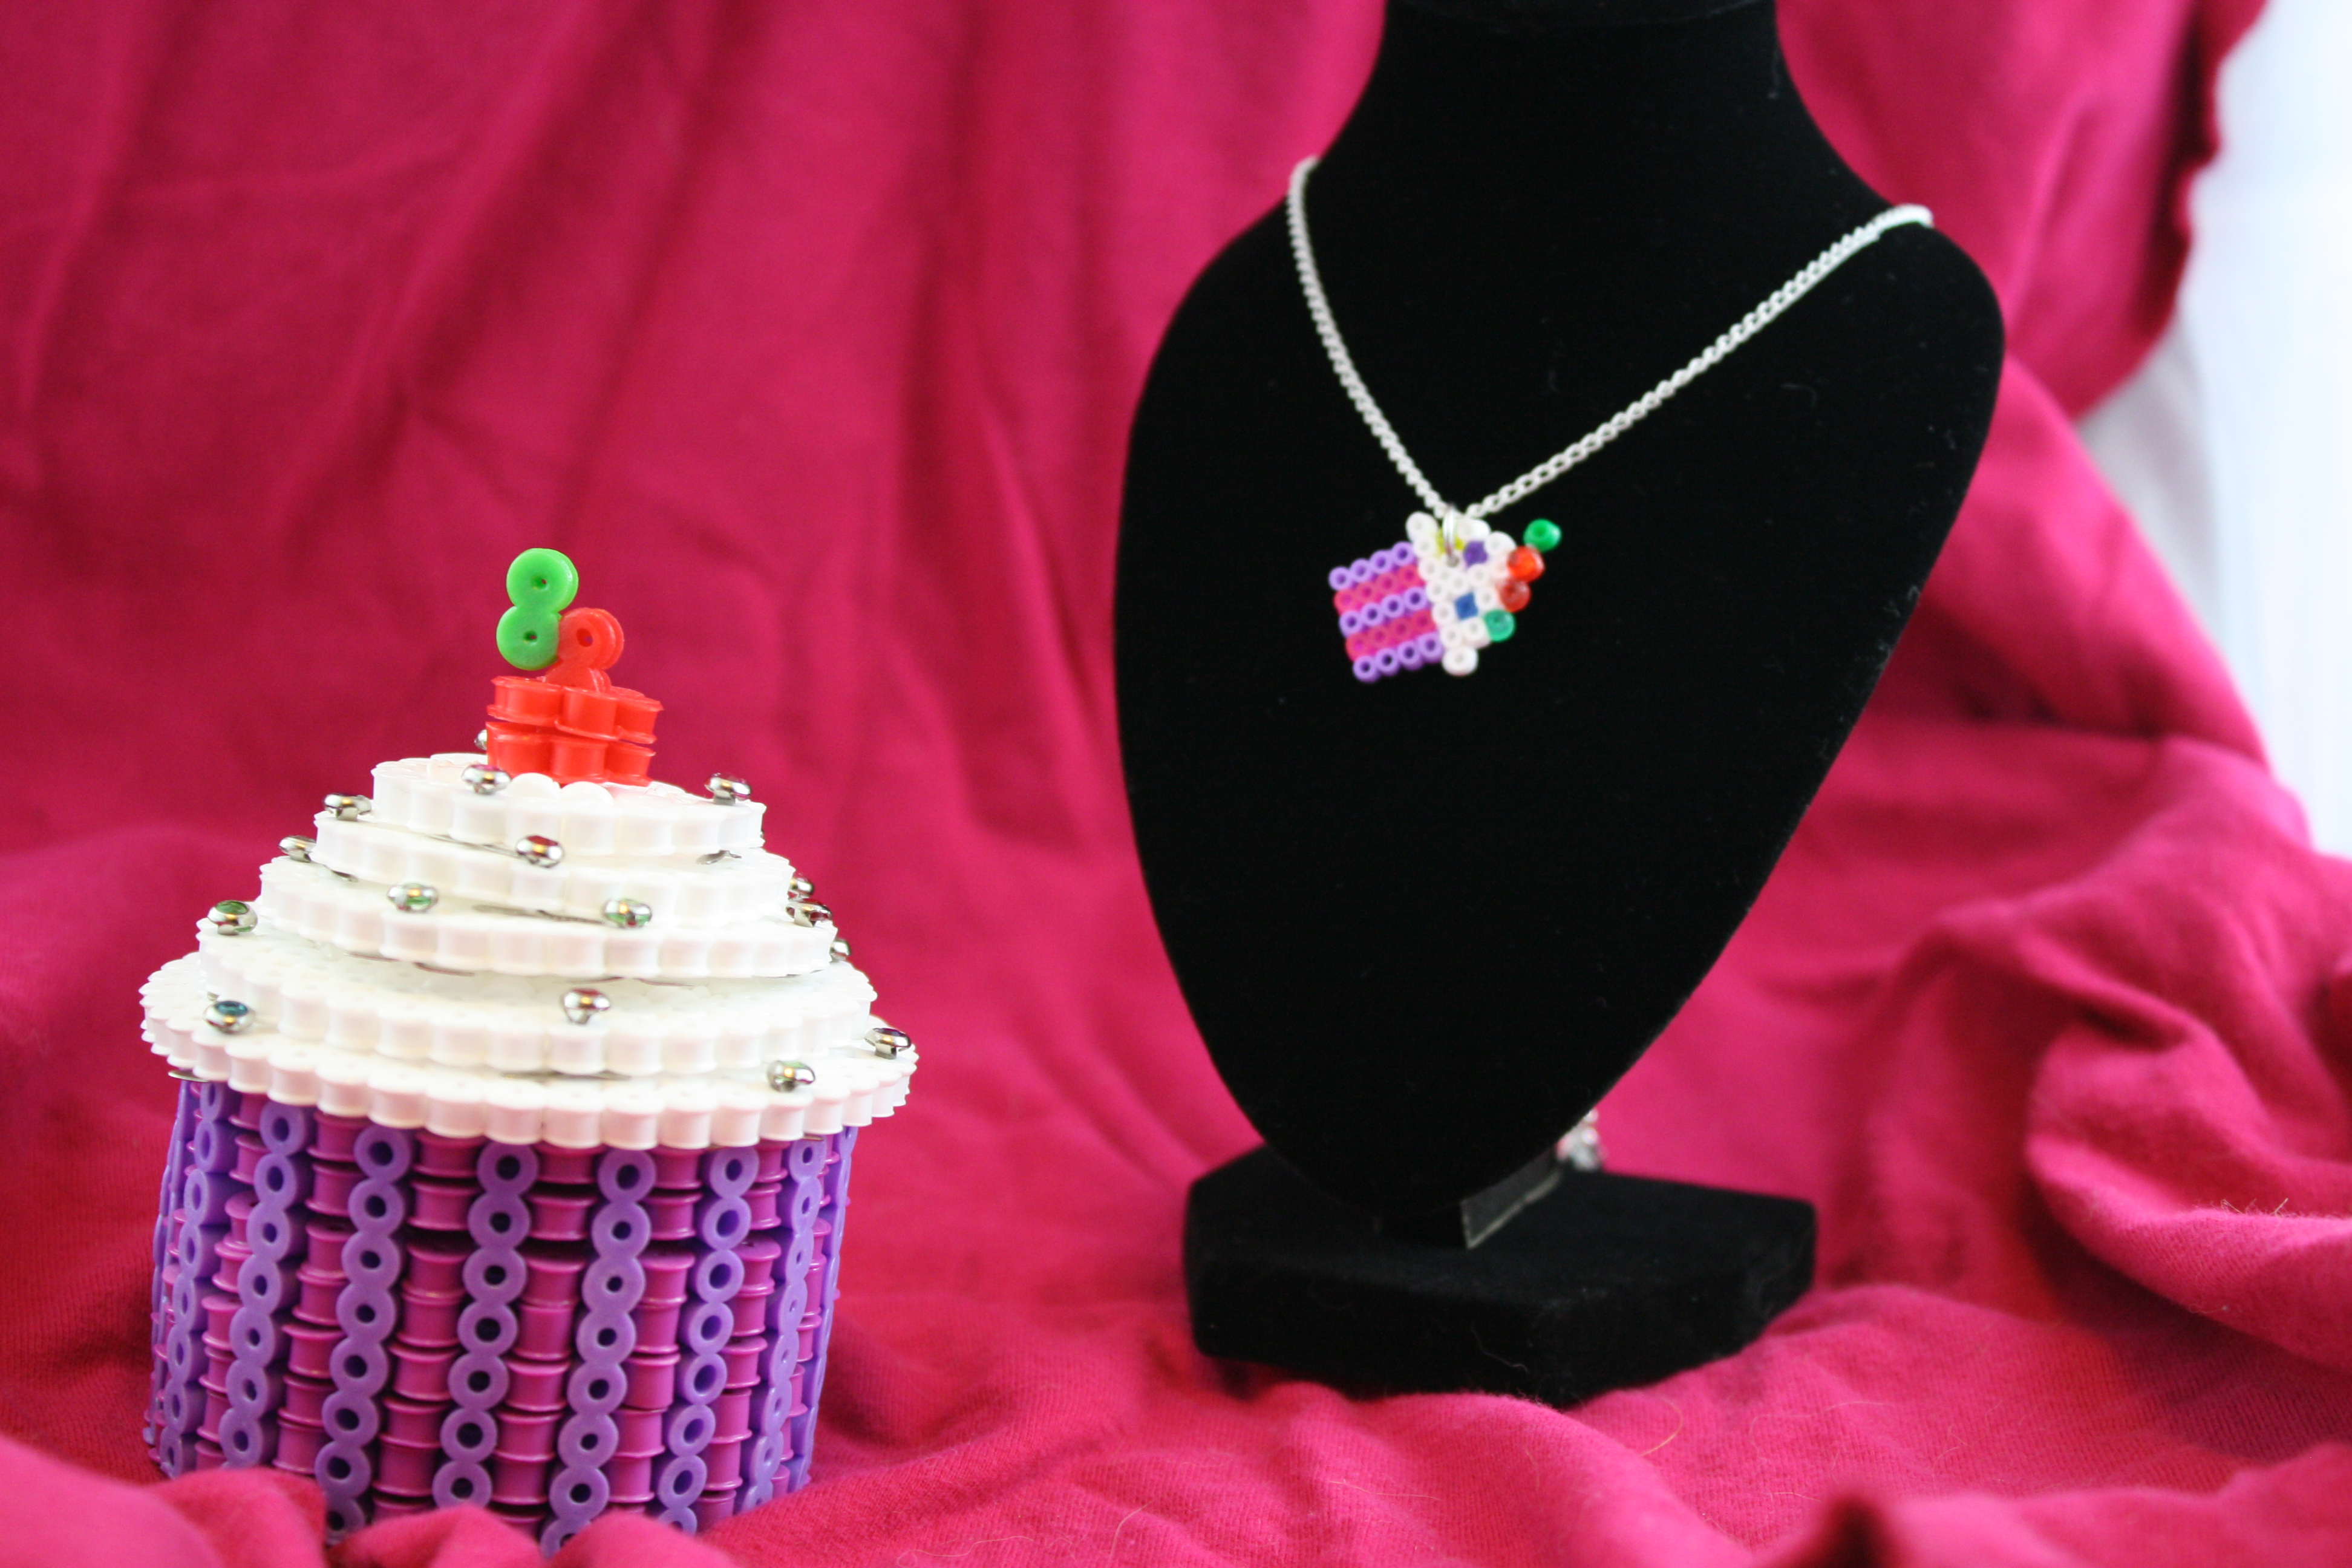 ashley godbold s blog this is me being arrogant page 13 cupcake box and necklace